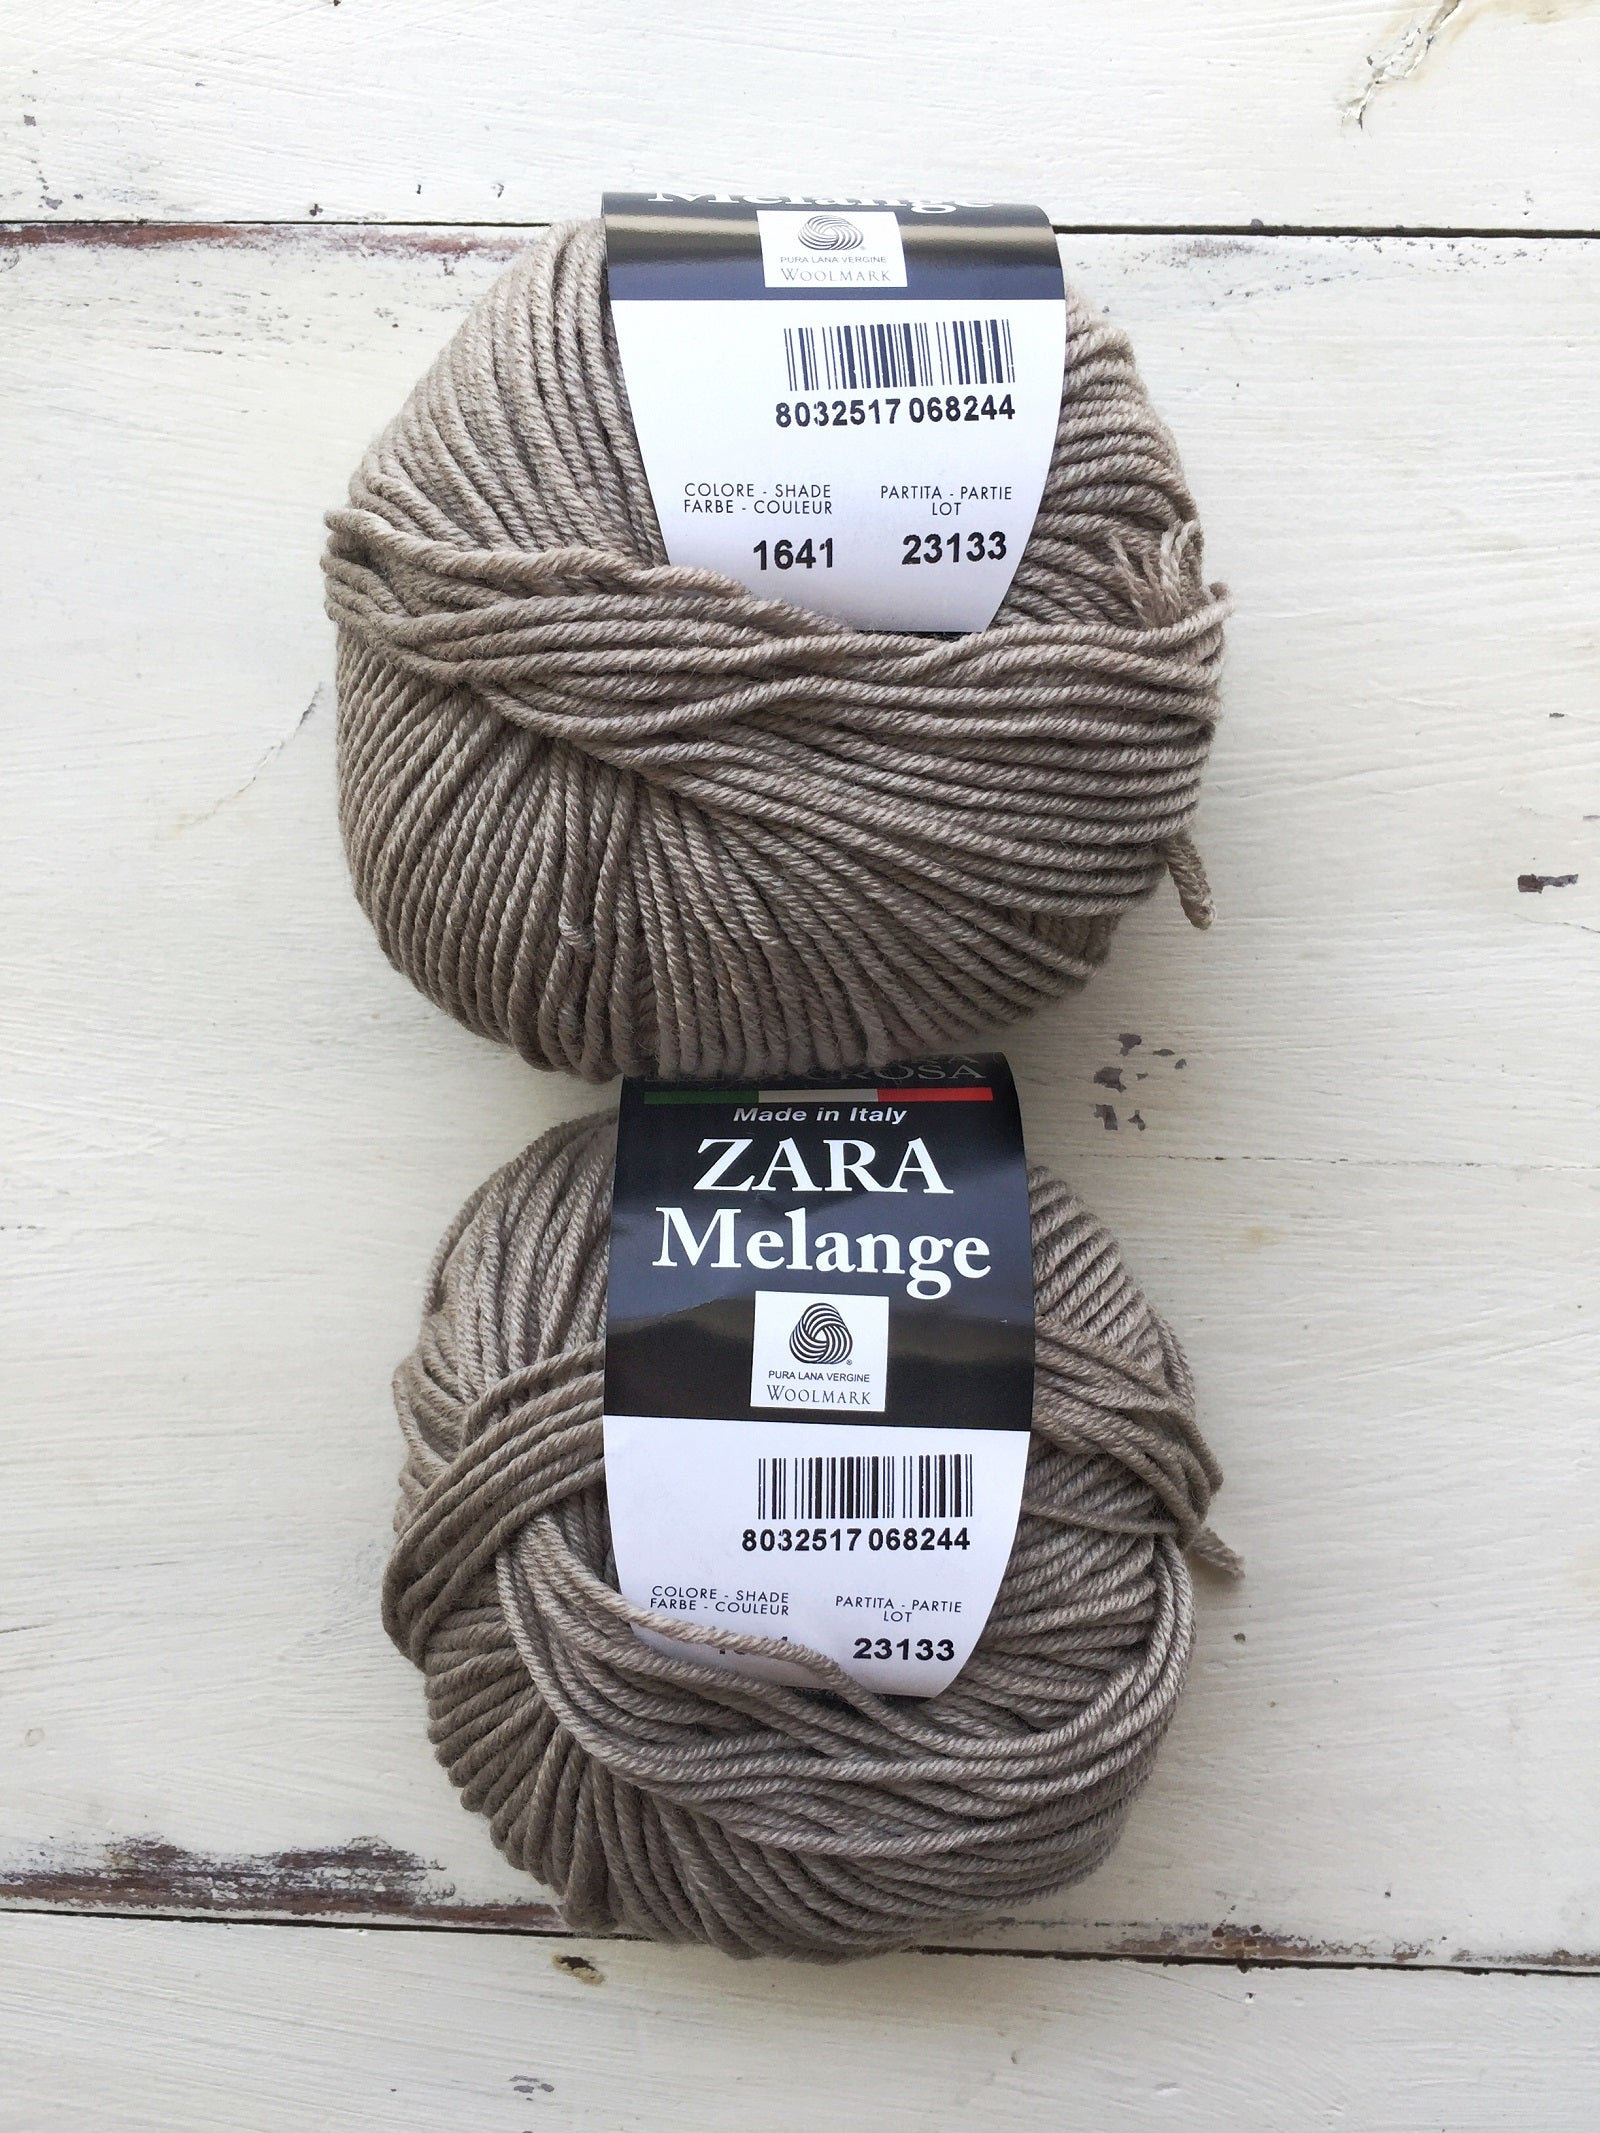 Zara and Zara Melange